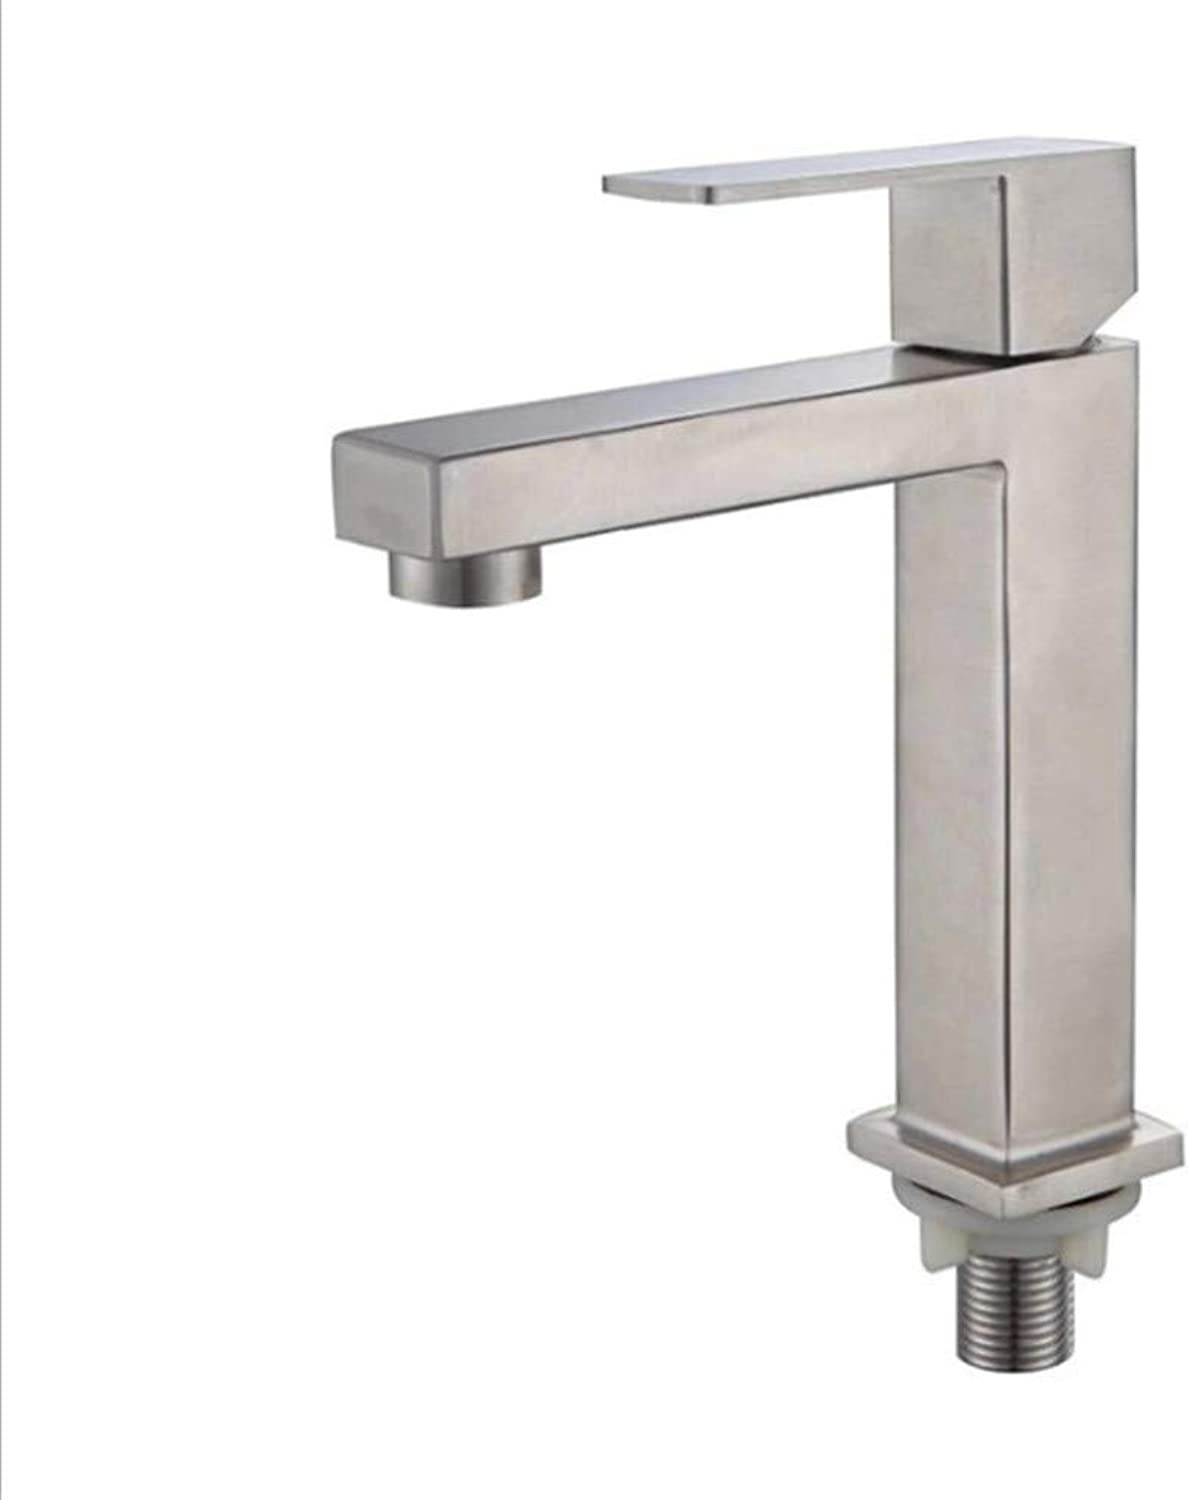 Water Tapdrinking Designer Arch304 Stainless Steel Single Cold Basin Faucet Single Hole Basin Balcony Single Faucet